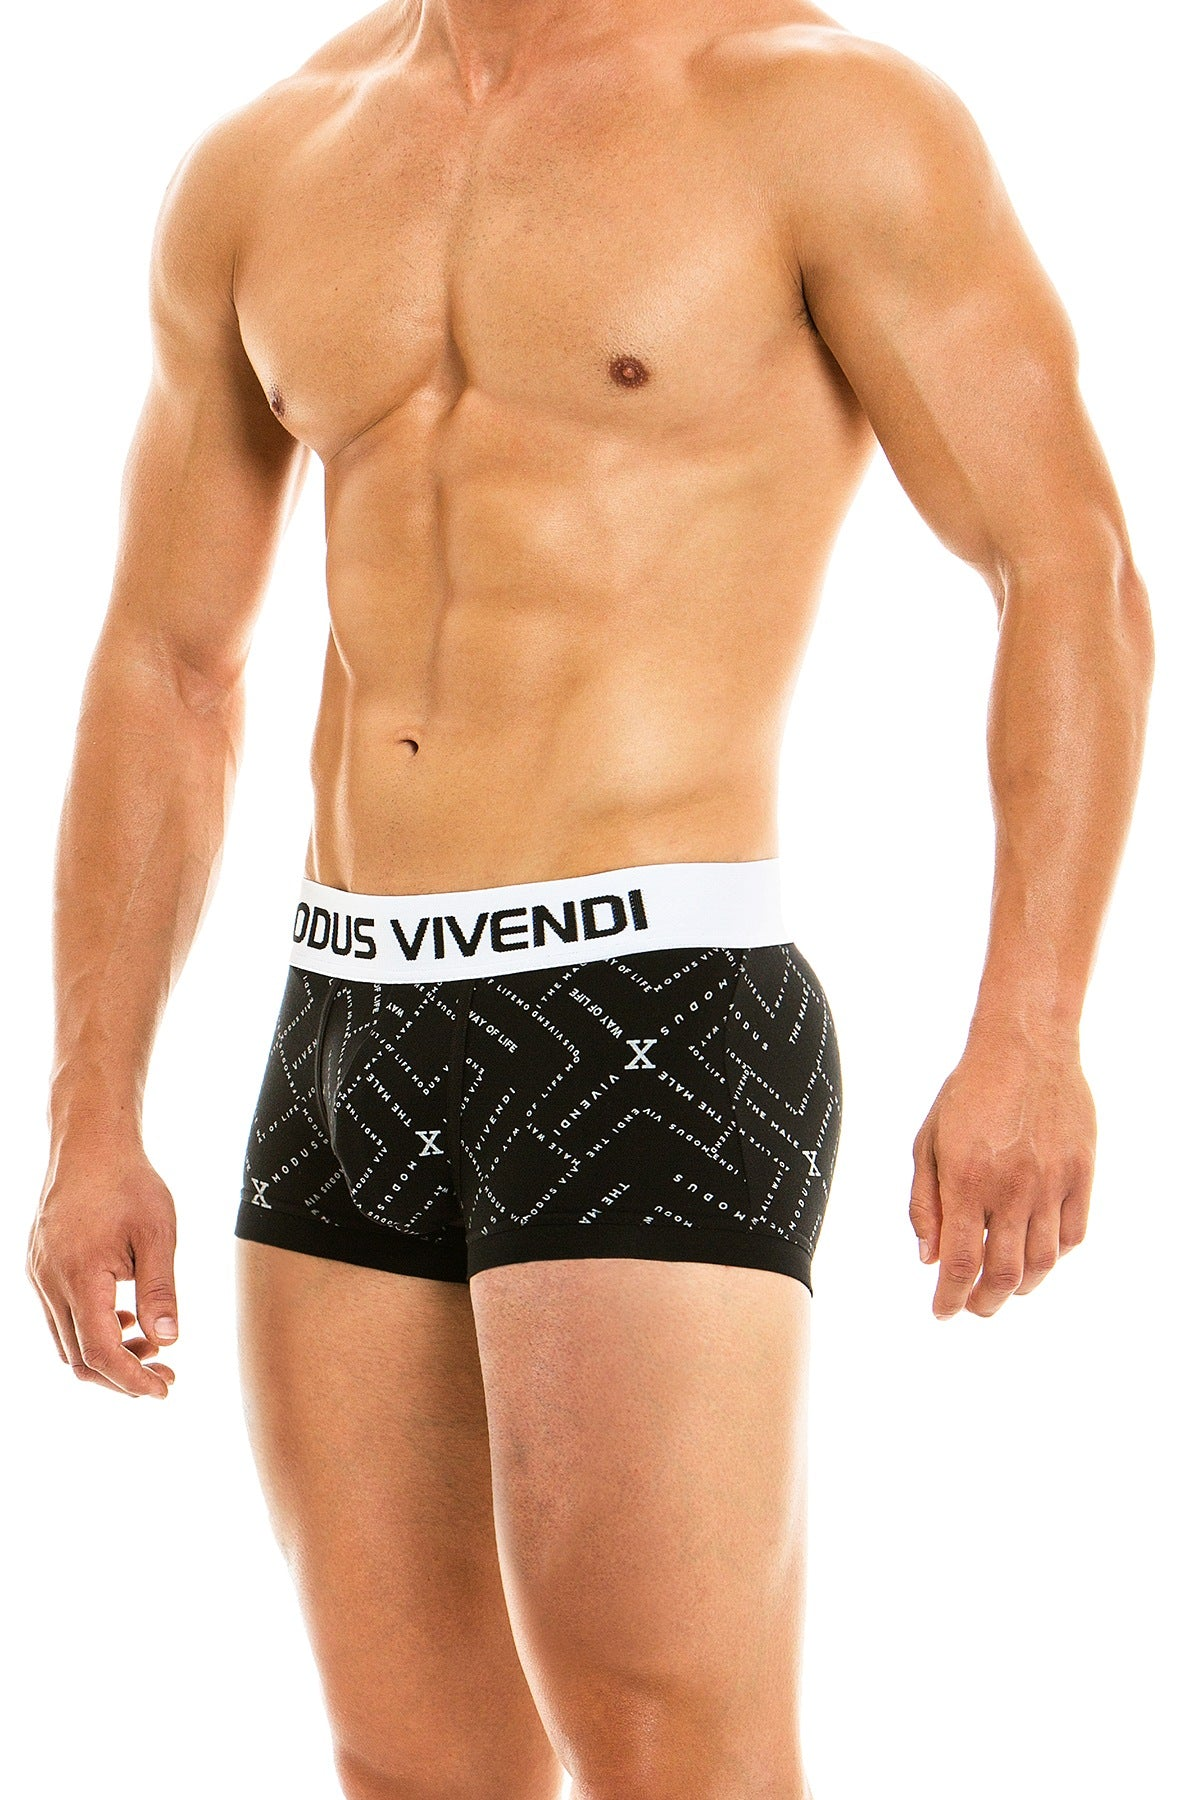 Modus Vivendi Black Birthday Trunk